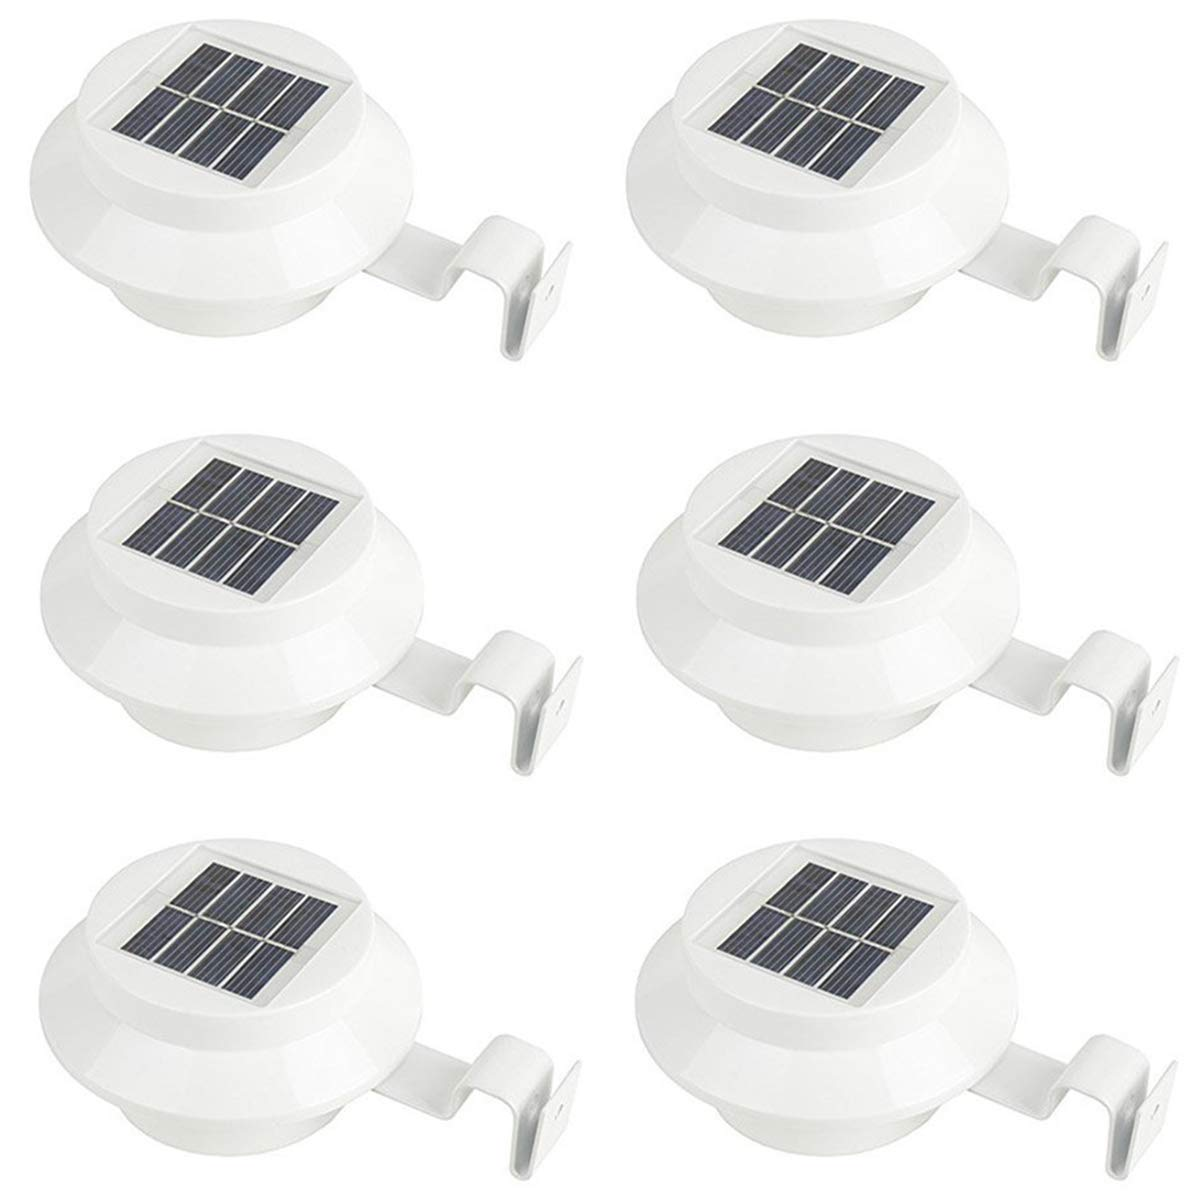 KingSo 3 LED Solar Powered Lights Outdoor LED Gutter Night Security Lamp for Fence Roof Driveway Garden Yard (6 Pack)